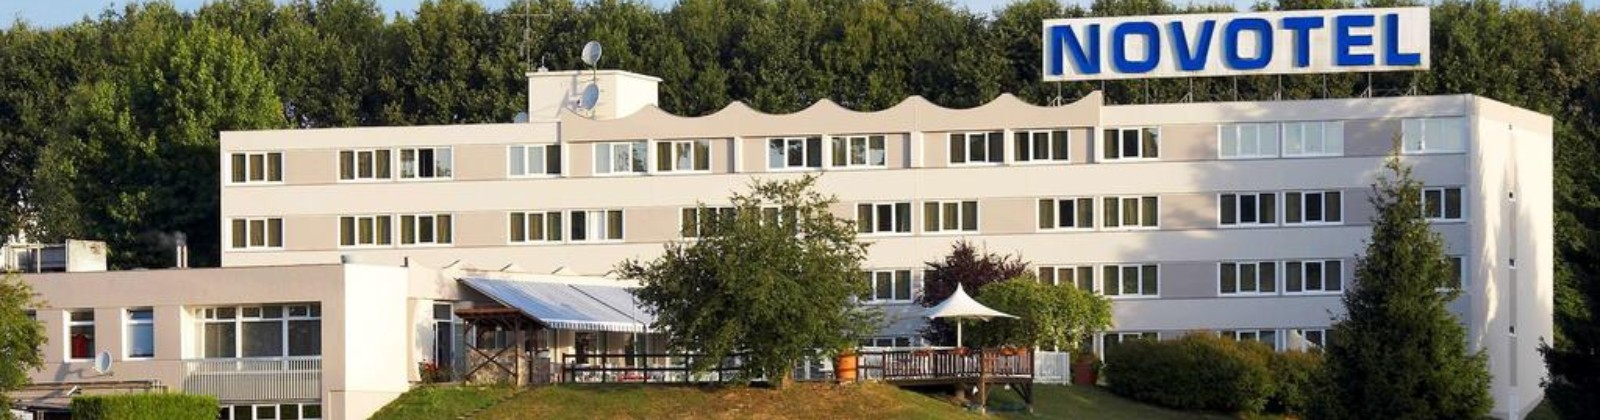 novotel limoges le lac olevene restaurant hotel booking meeting